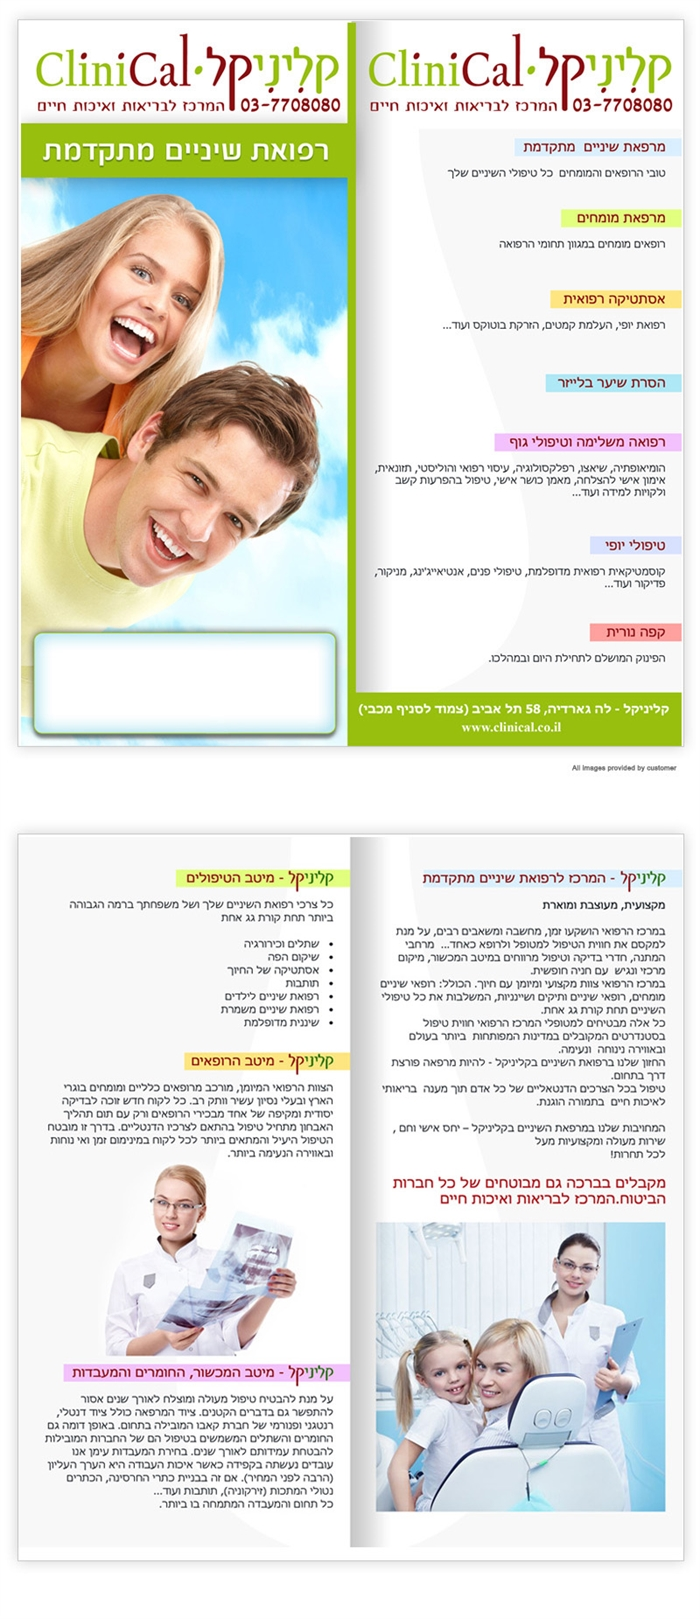 Brochure Design: CliniCal